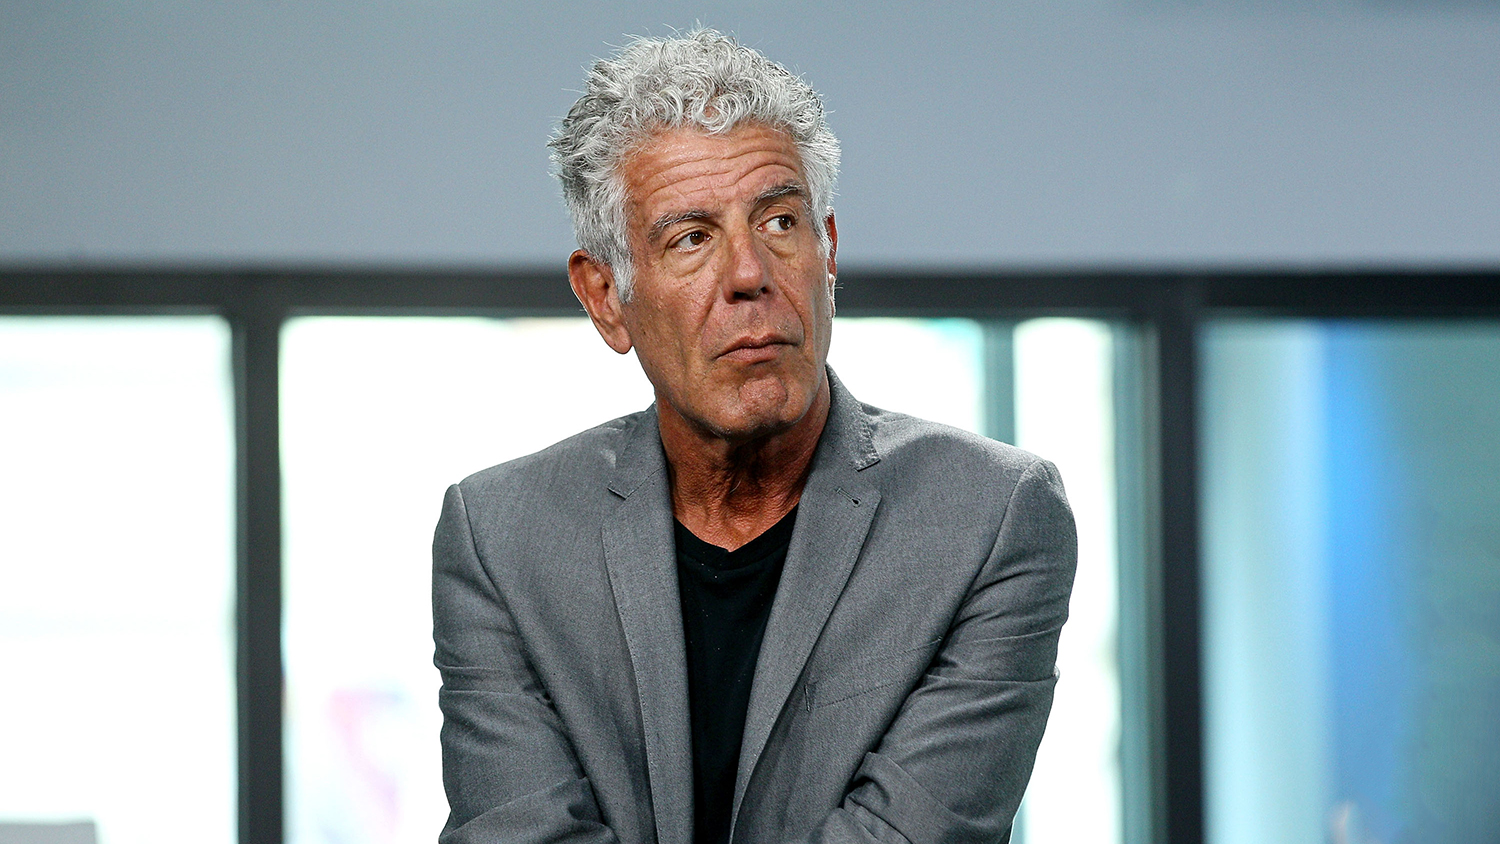 Watch the Trailer for Anthony Bourdain's Food Waste Documentary